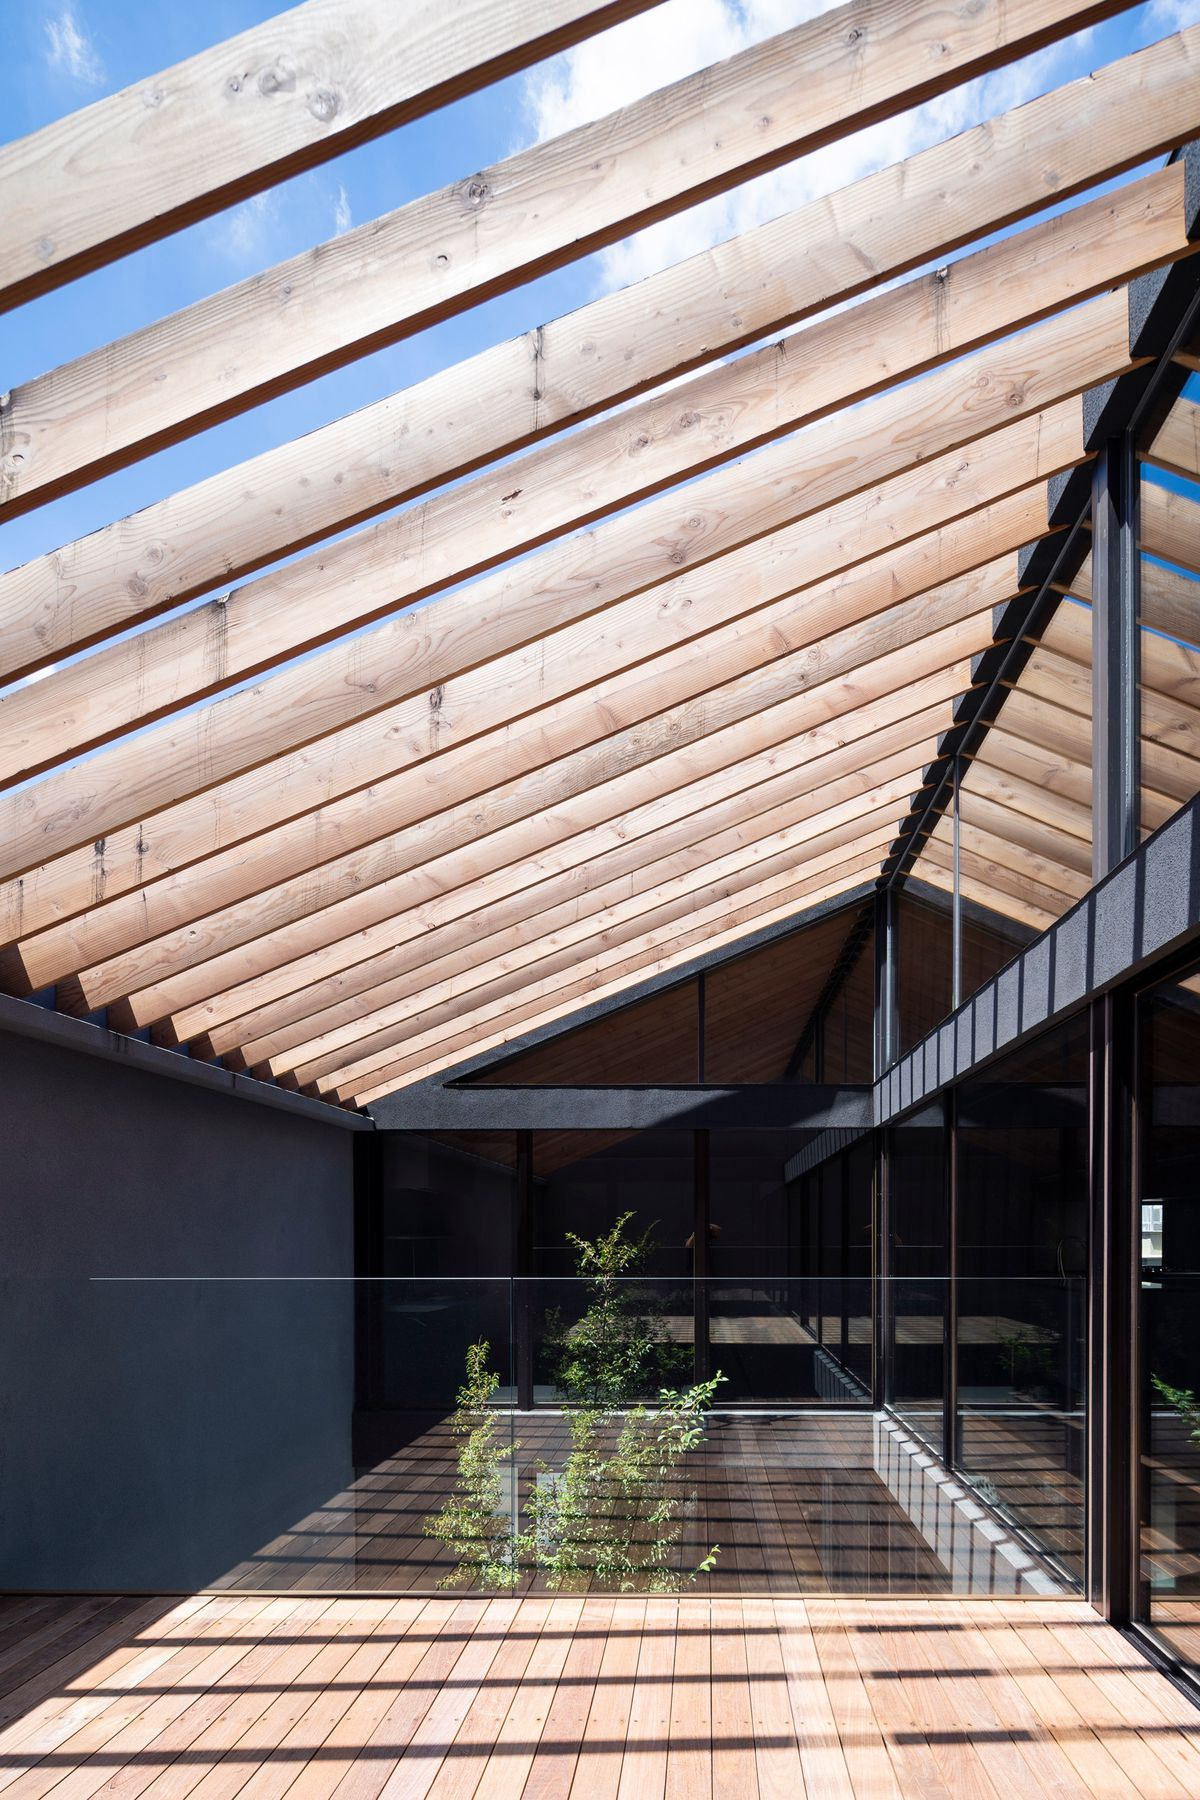 Courtyard with exposed wooden rafters